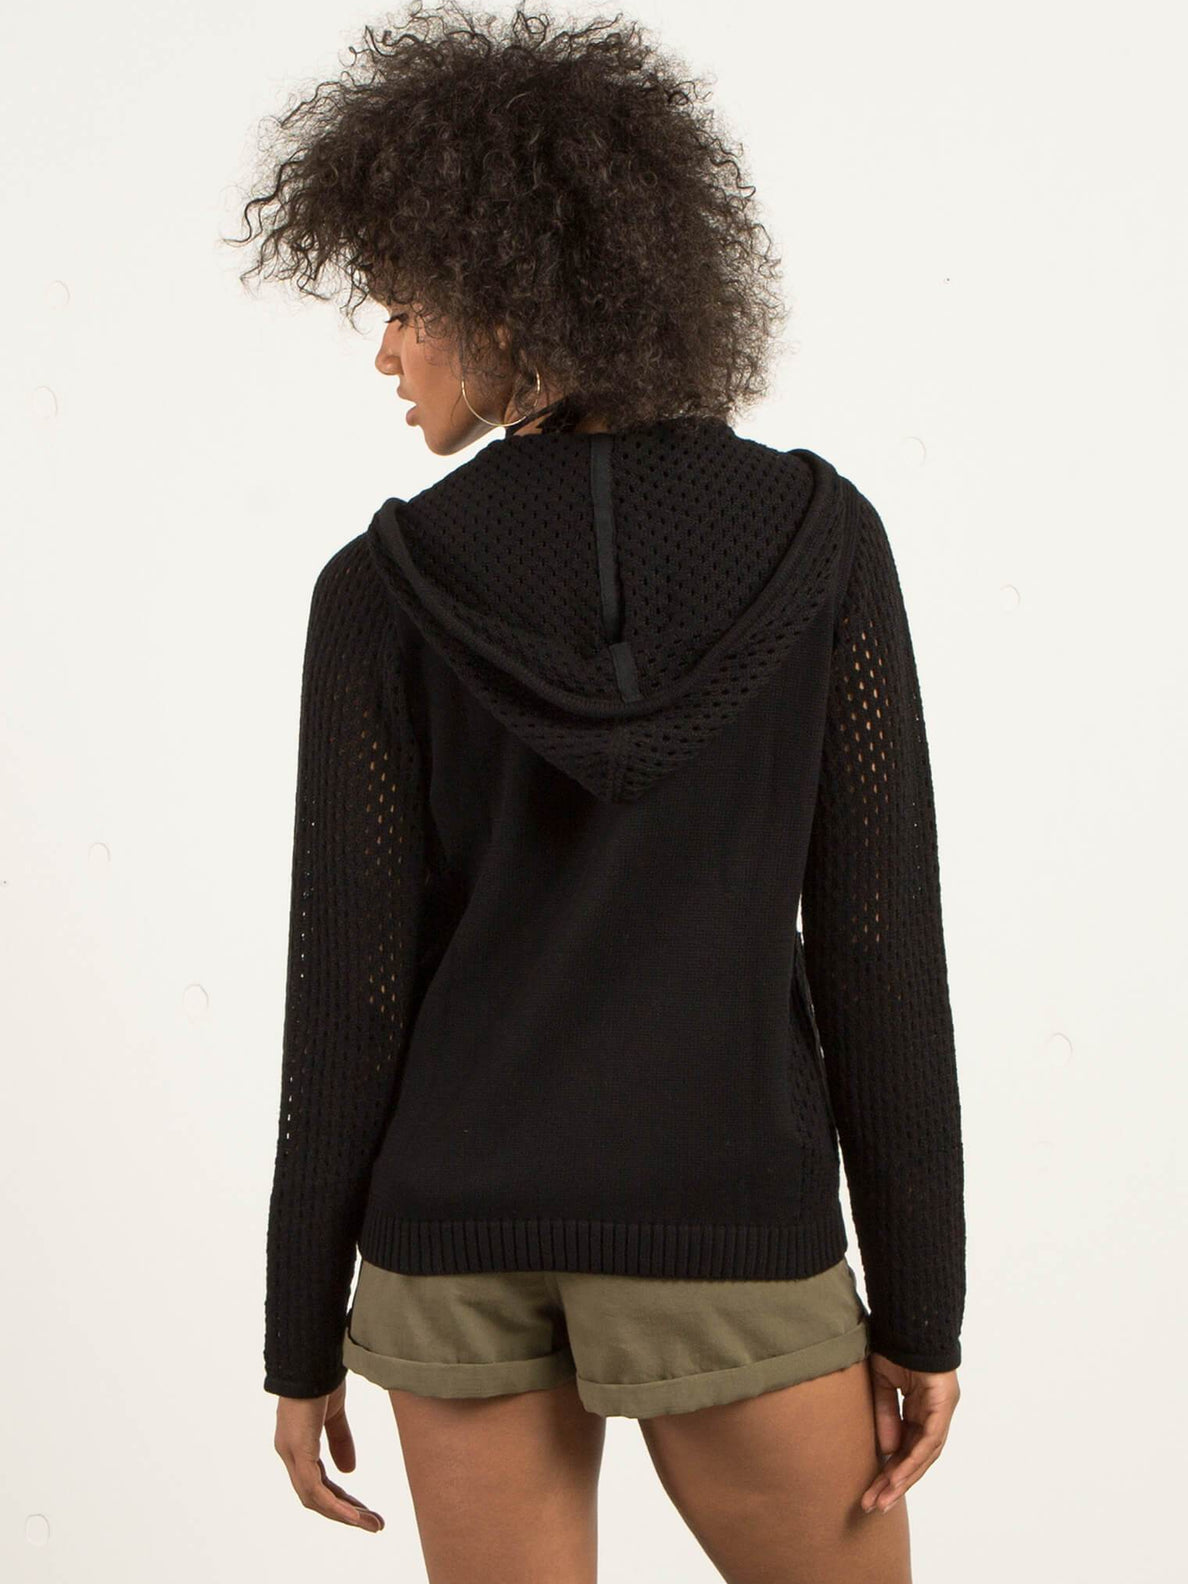 Hey Meshter Sweater - Black